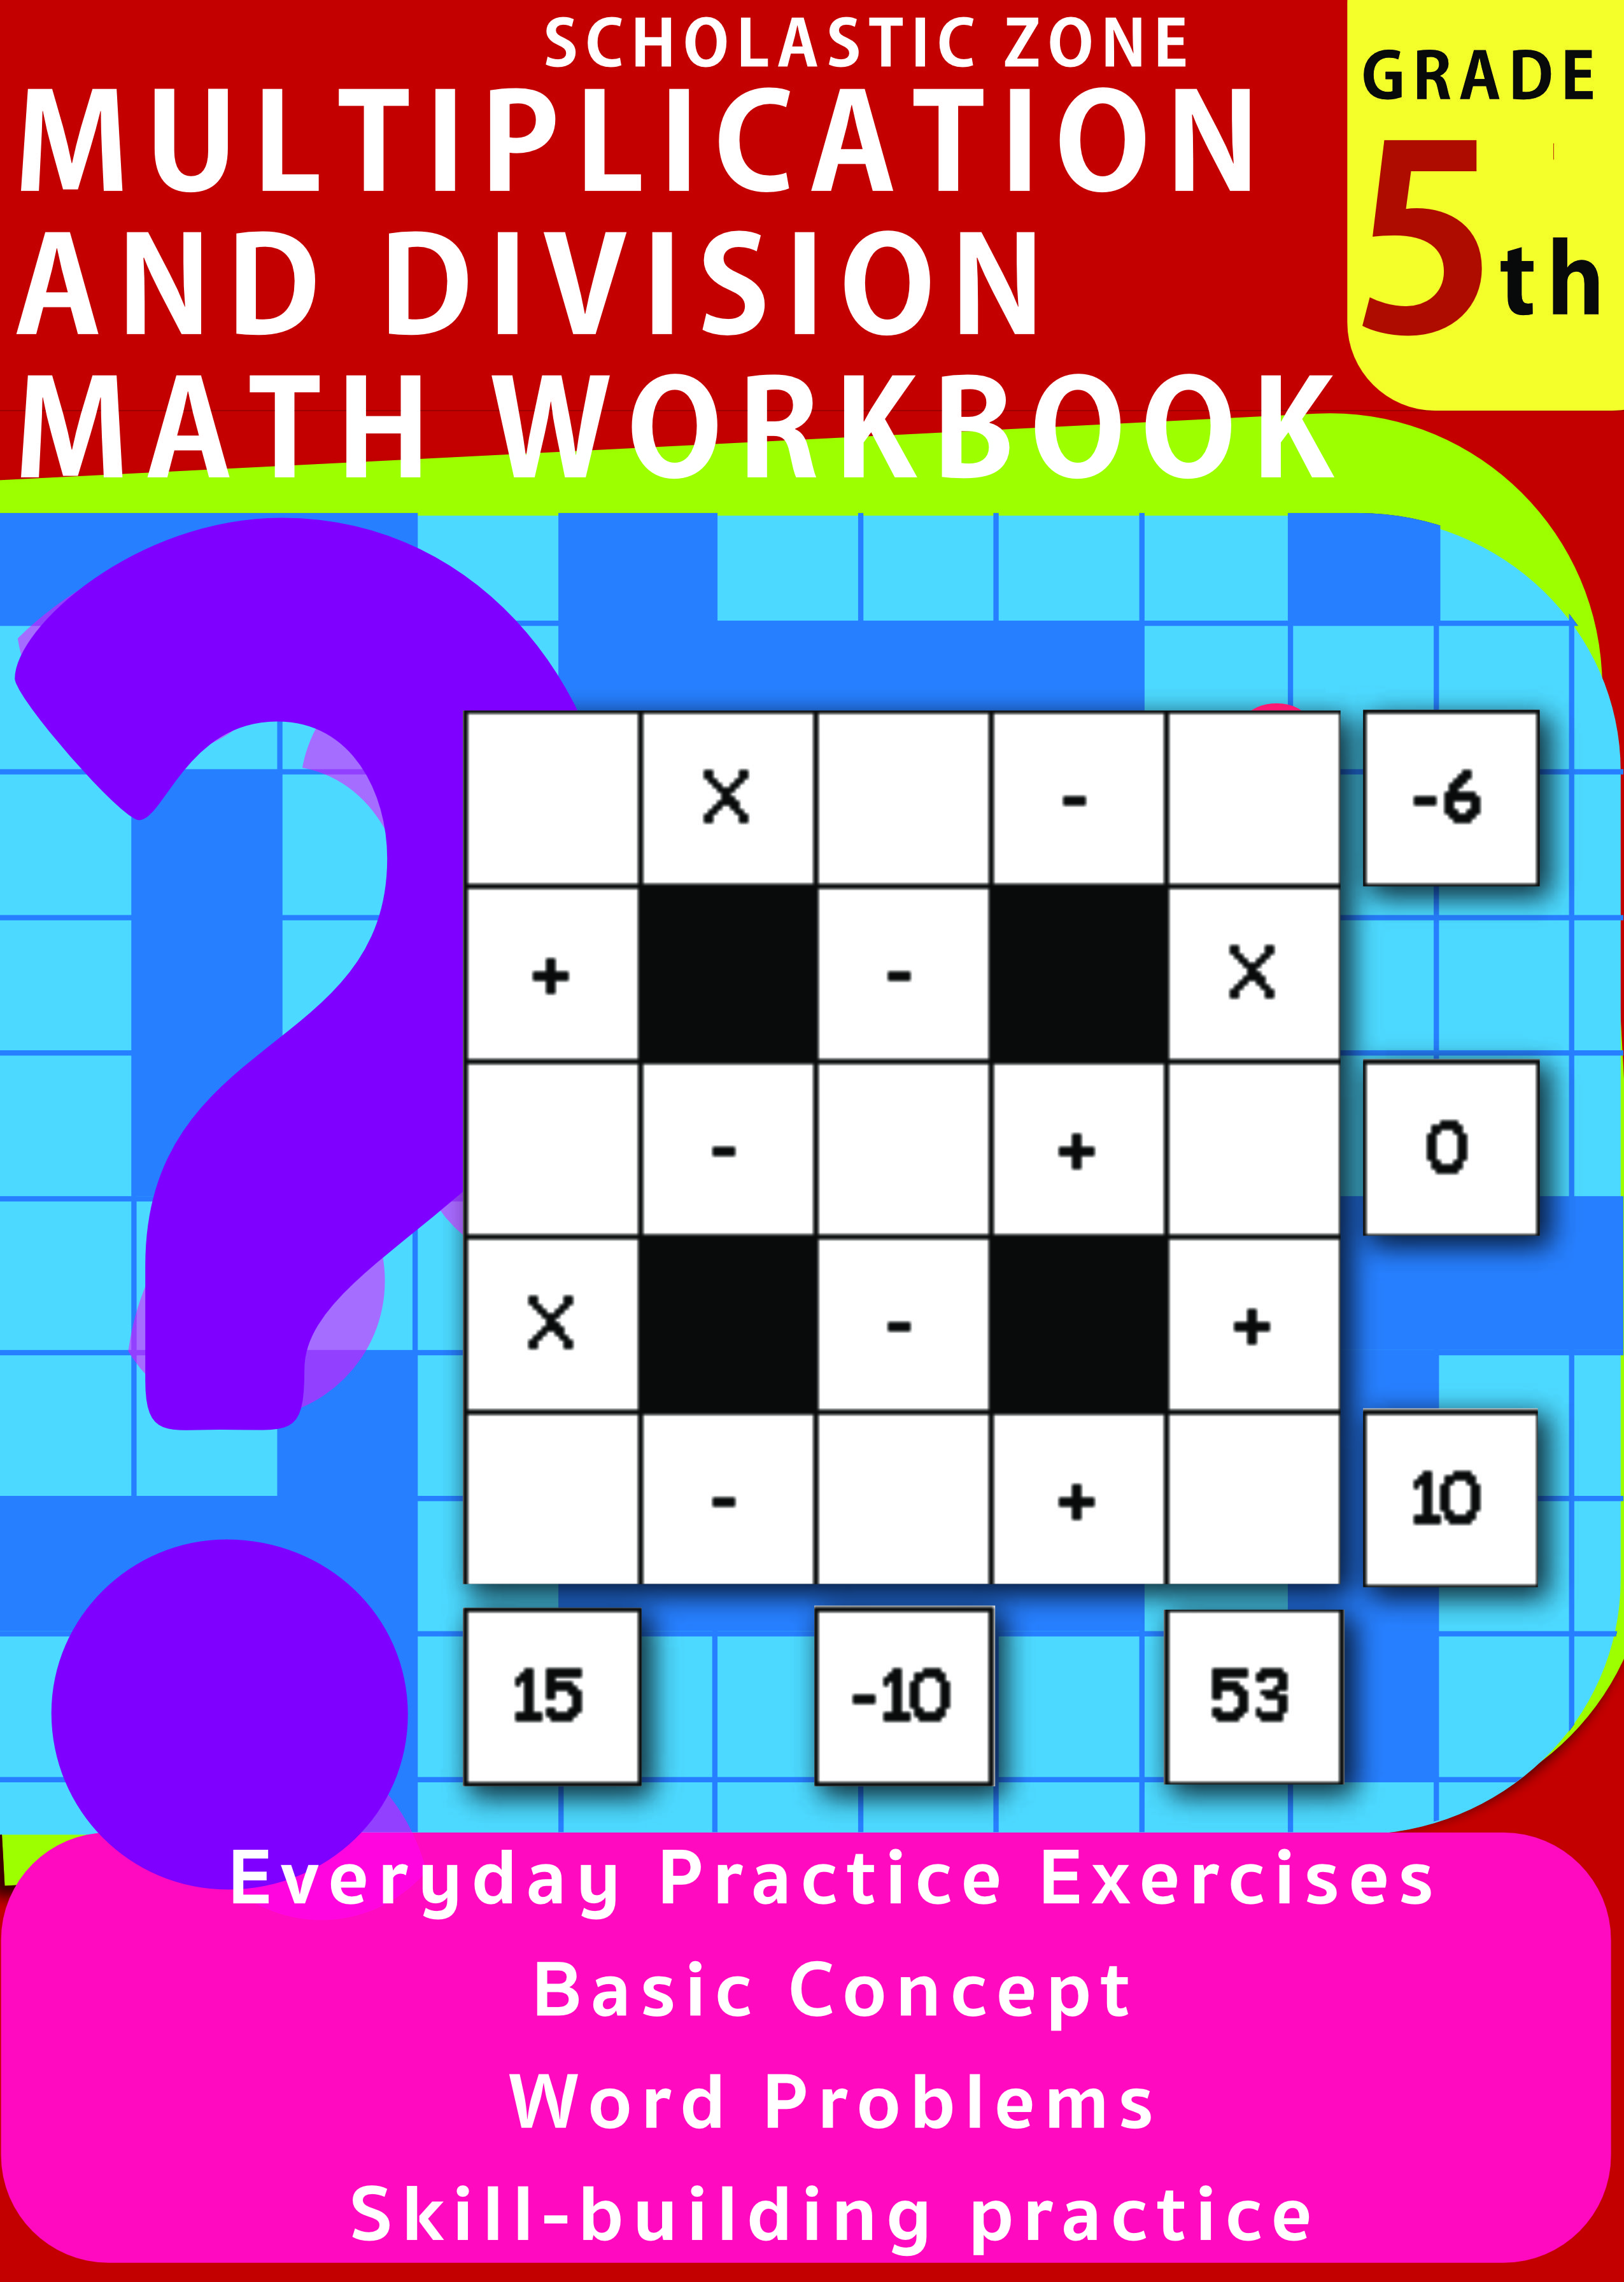 Multiplication And Division Math Workbook 5th Grade